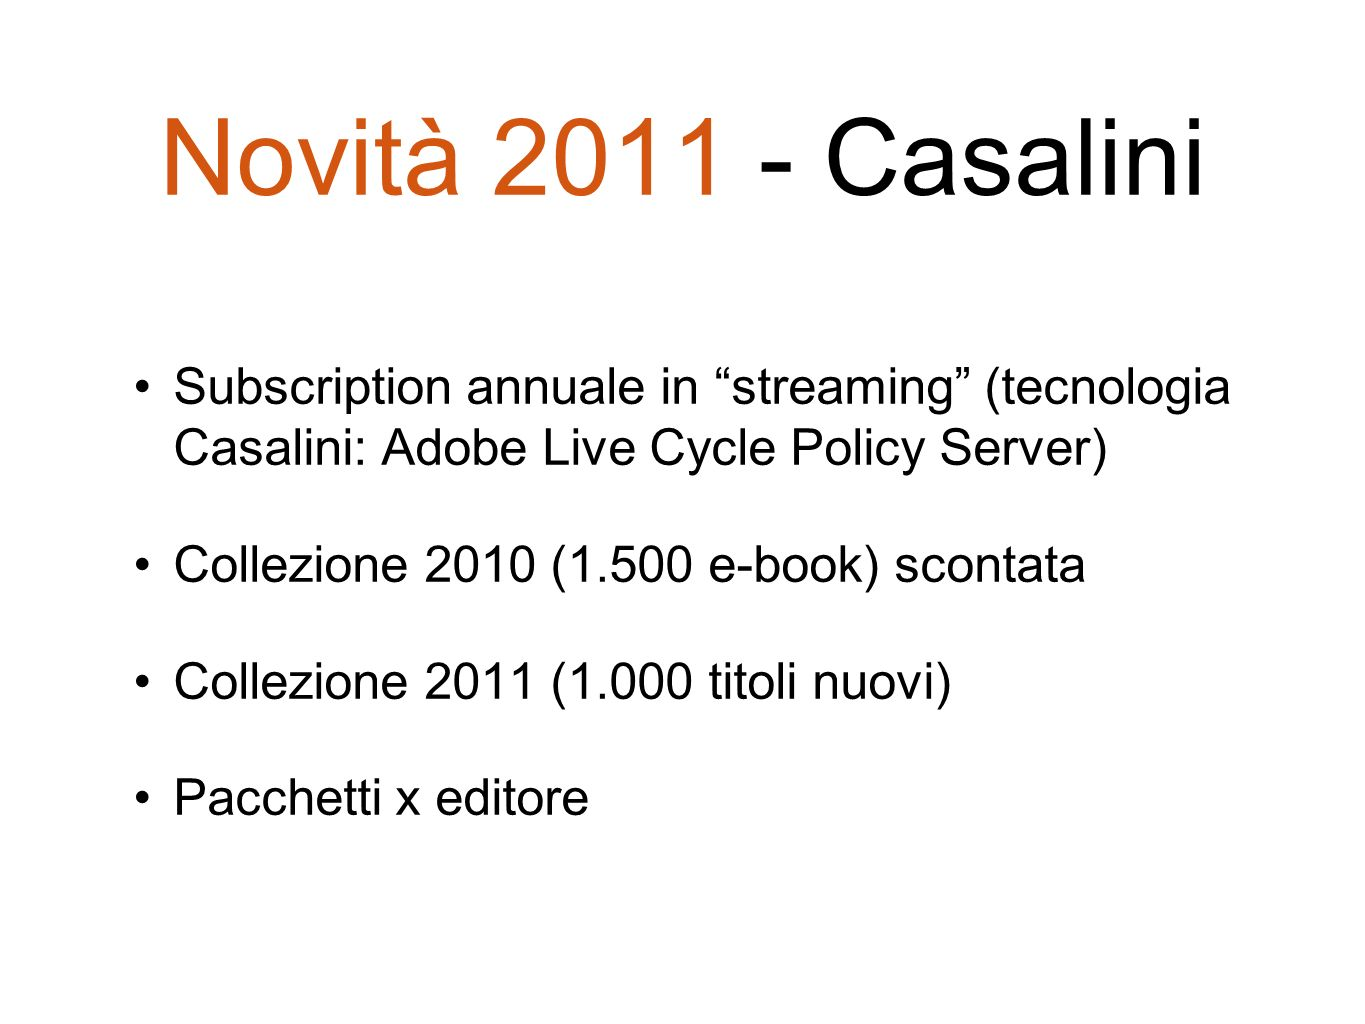 Novità 2011 - Casalini Subscription annuale in streaming (tecnologia Casalini: Adobe Live Cycle Policy Server)